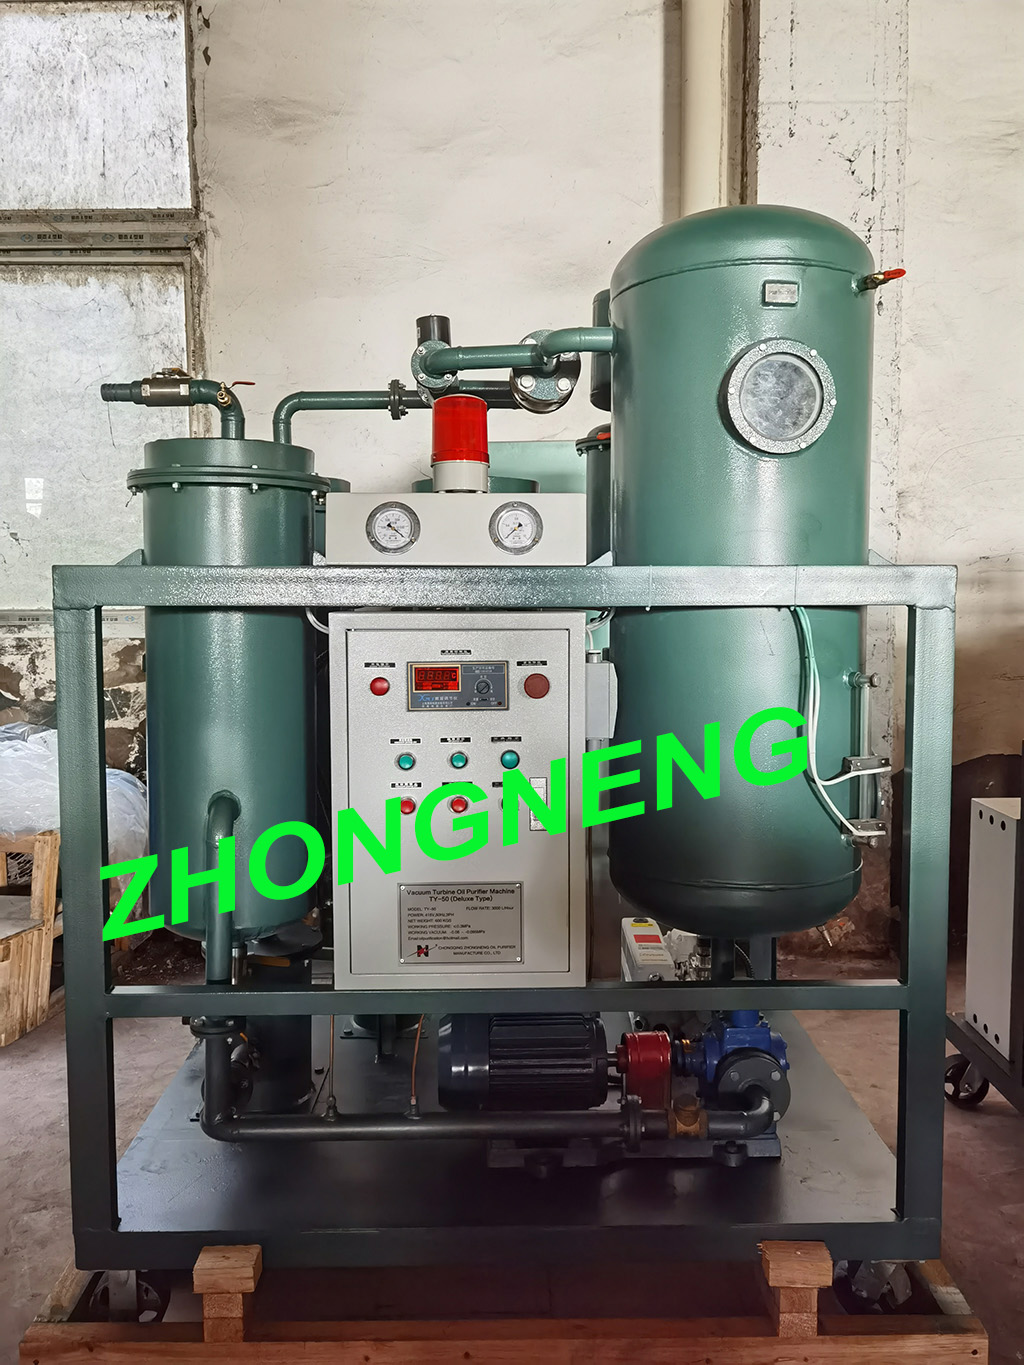 TY-50 Turbine Oil Purifier Machine Is Delivered